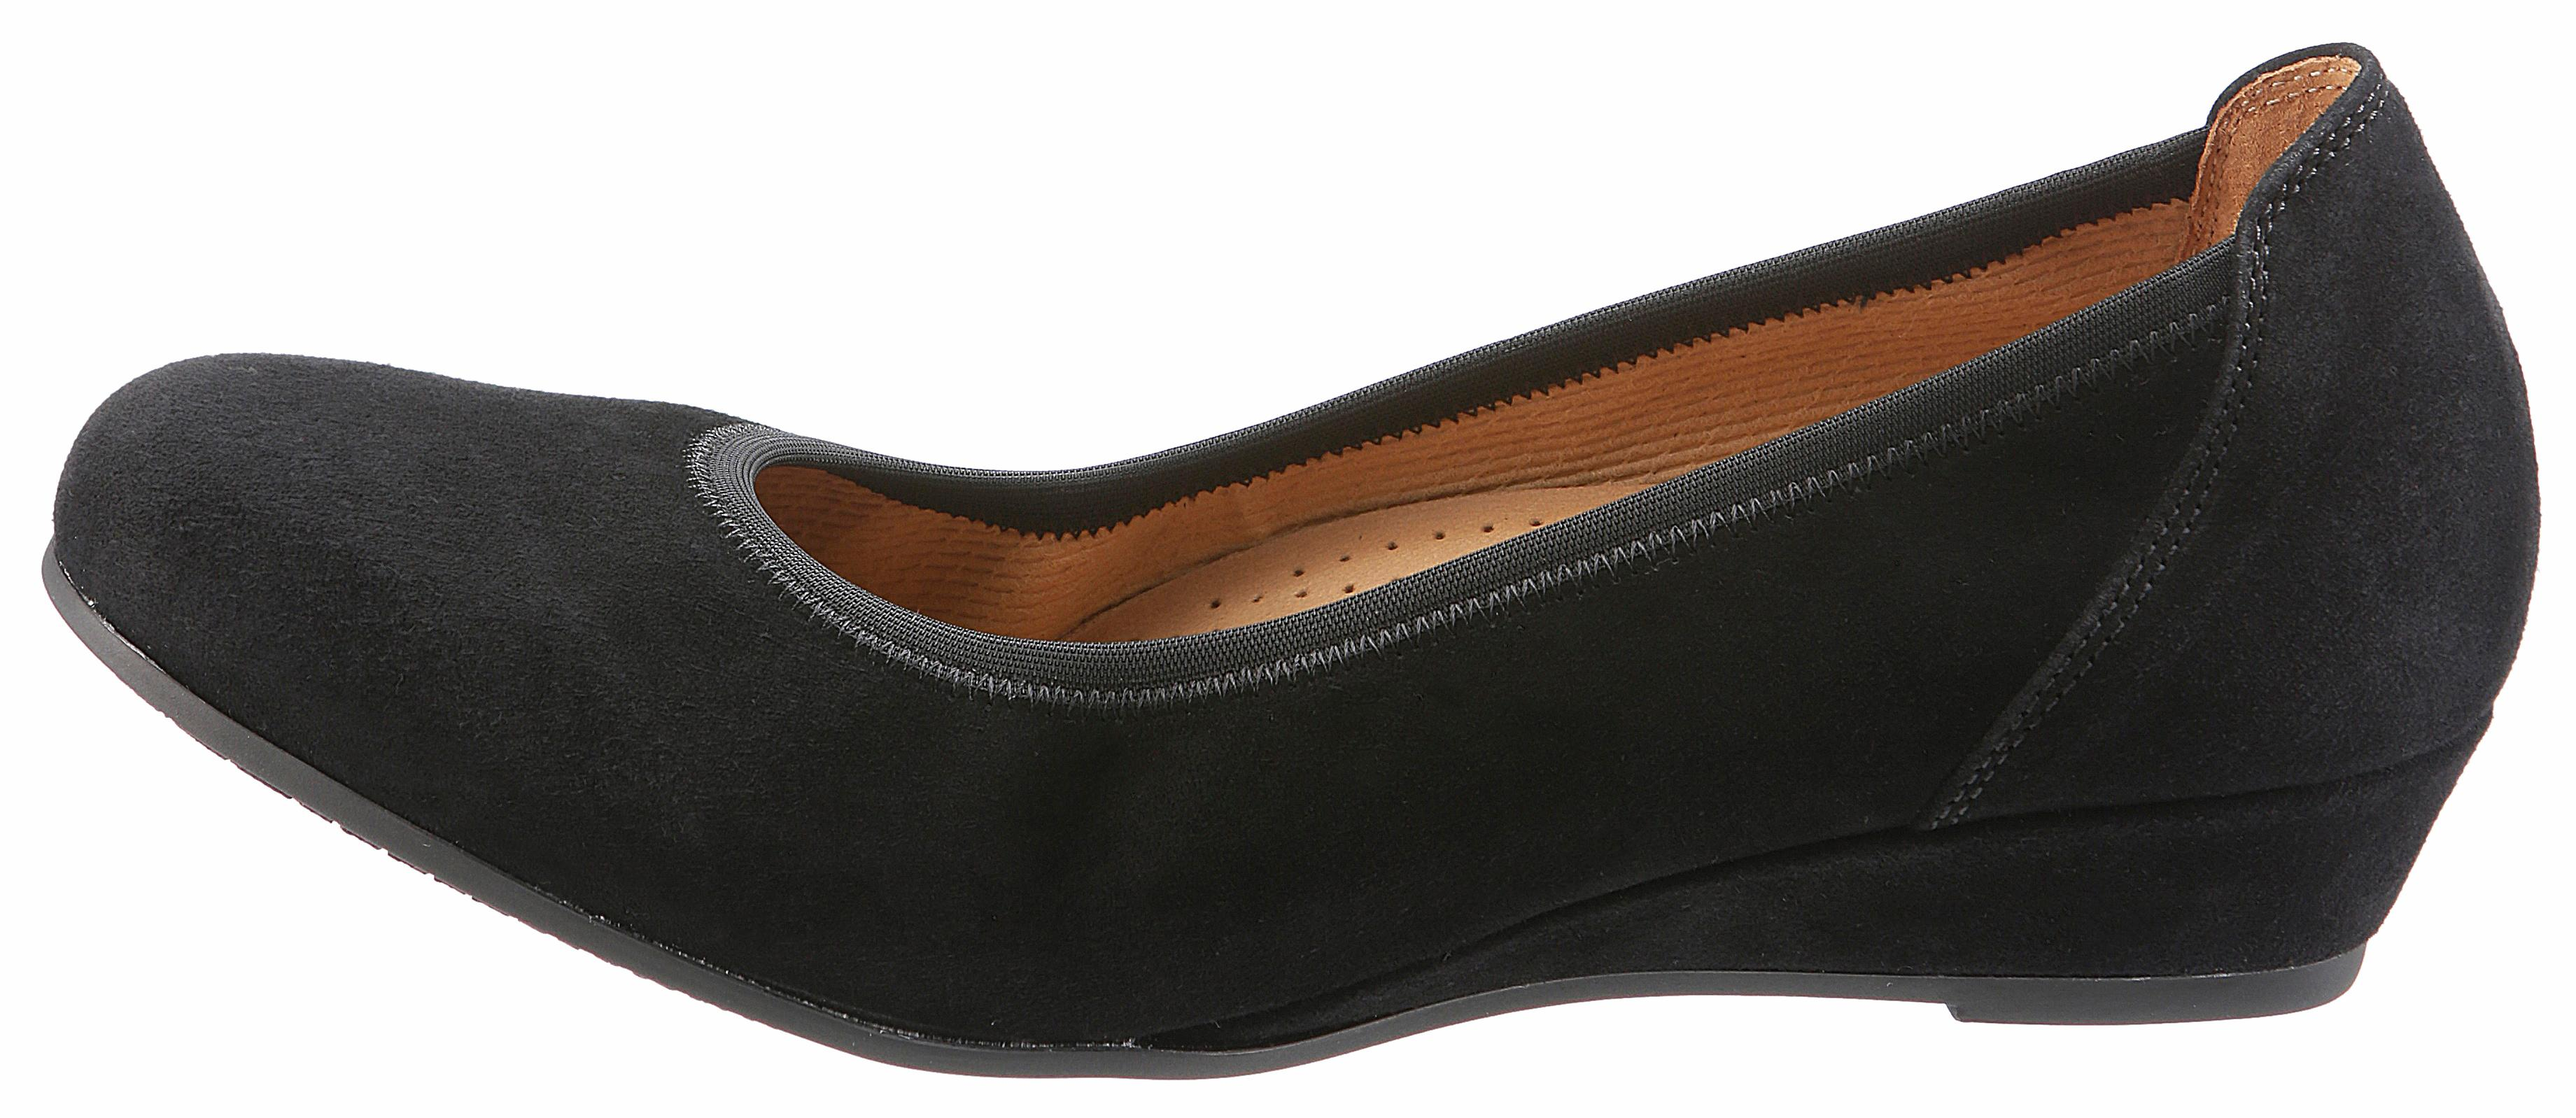 Gabor Pumps Damenmode/Schuhe/Pumps/Keilpumps